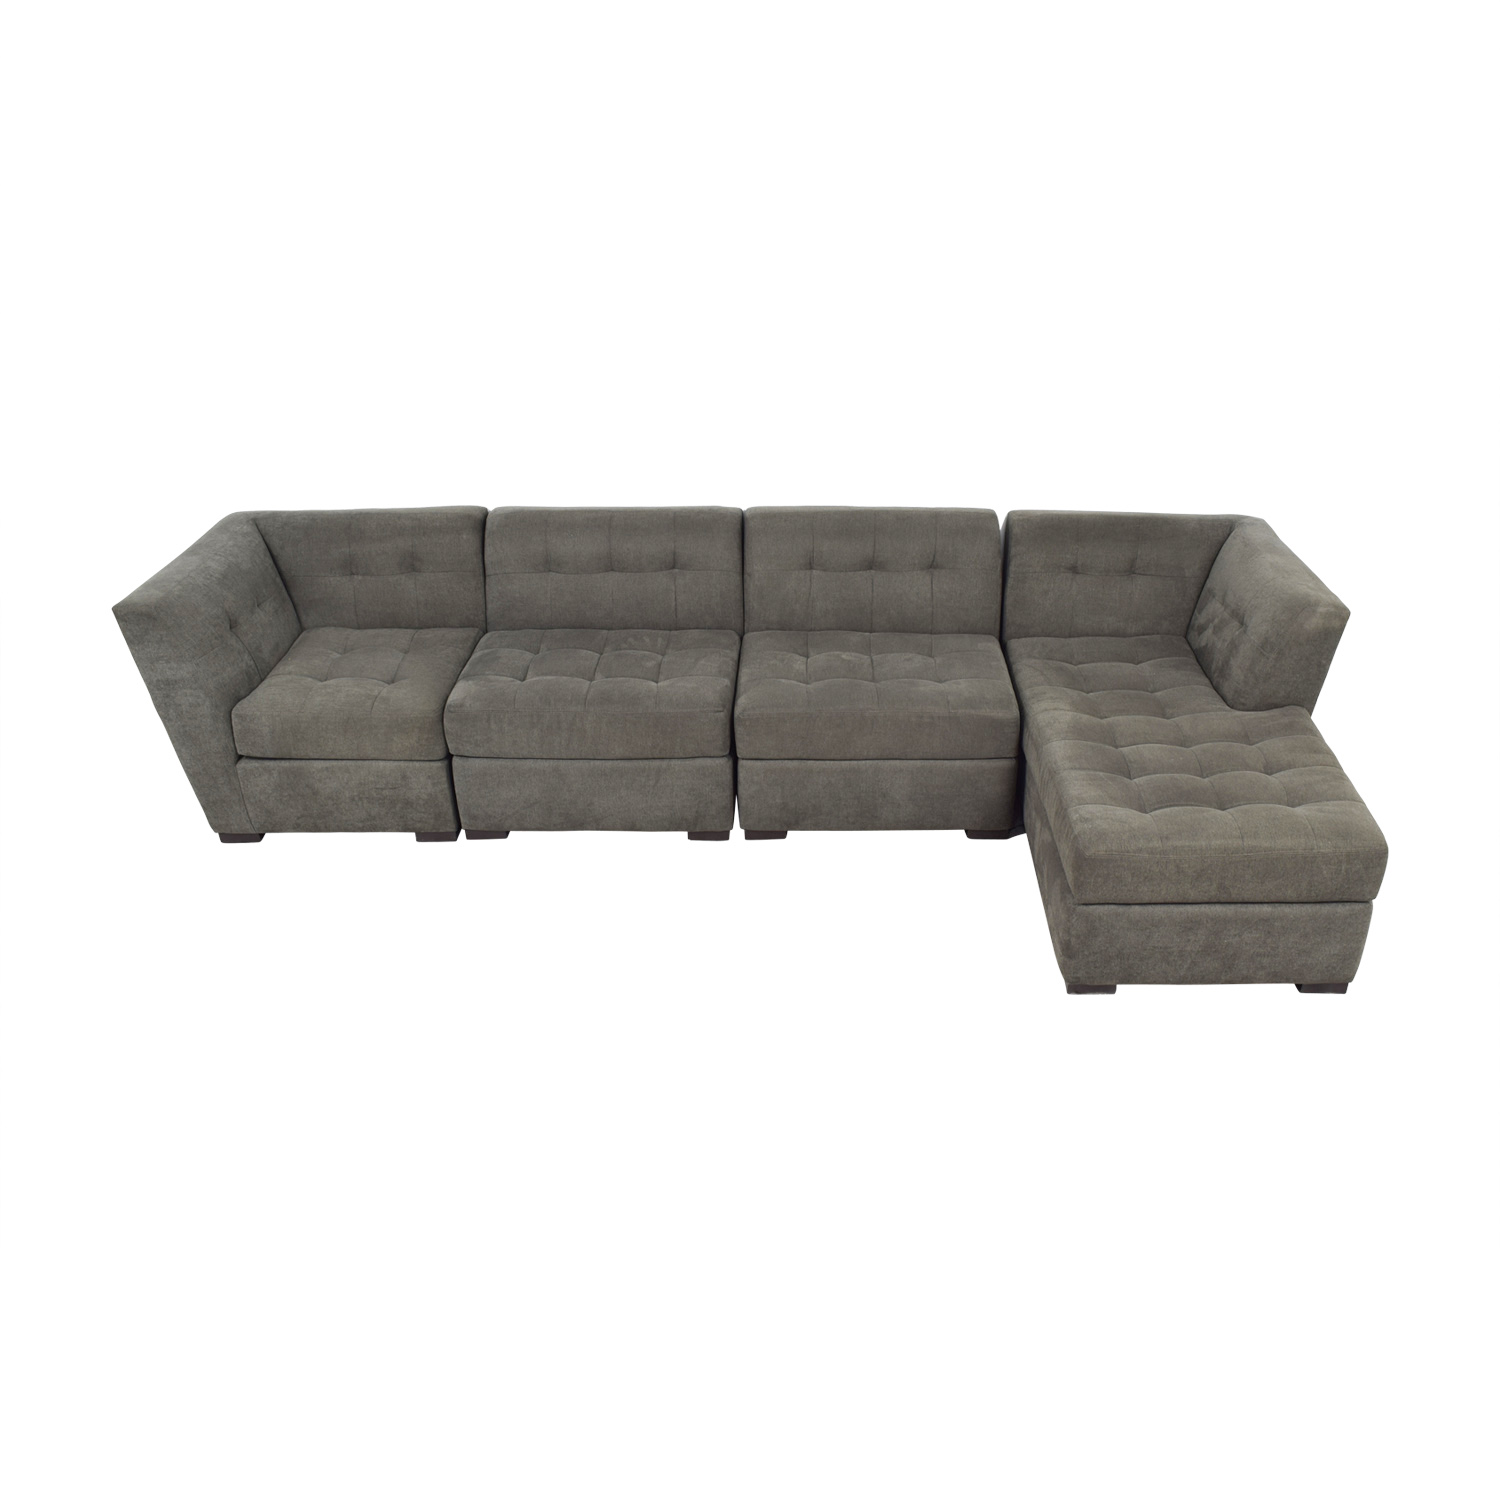 Astounding 70 Off Macys Macys Grey Tufted Four Piece Chaise Sectional Sofas Creativecarmelina Interior Chair Design Creativecarmelinacom